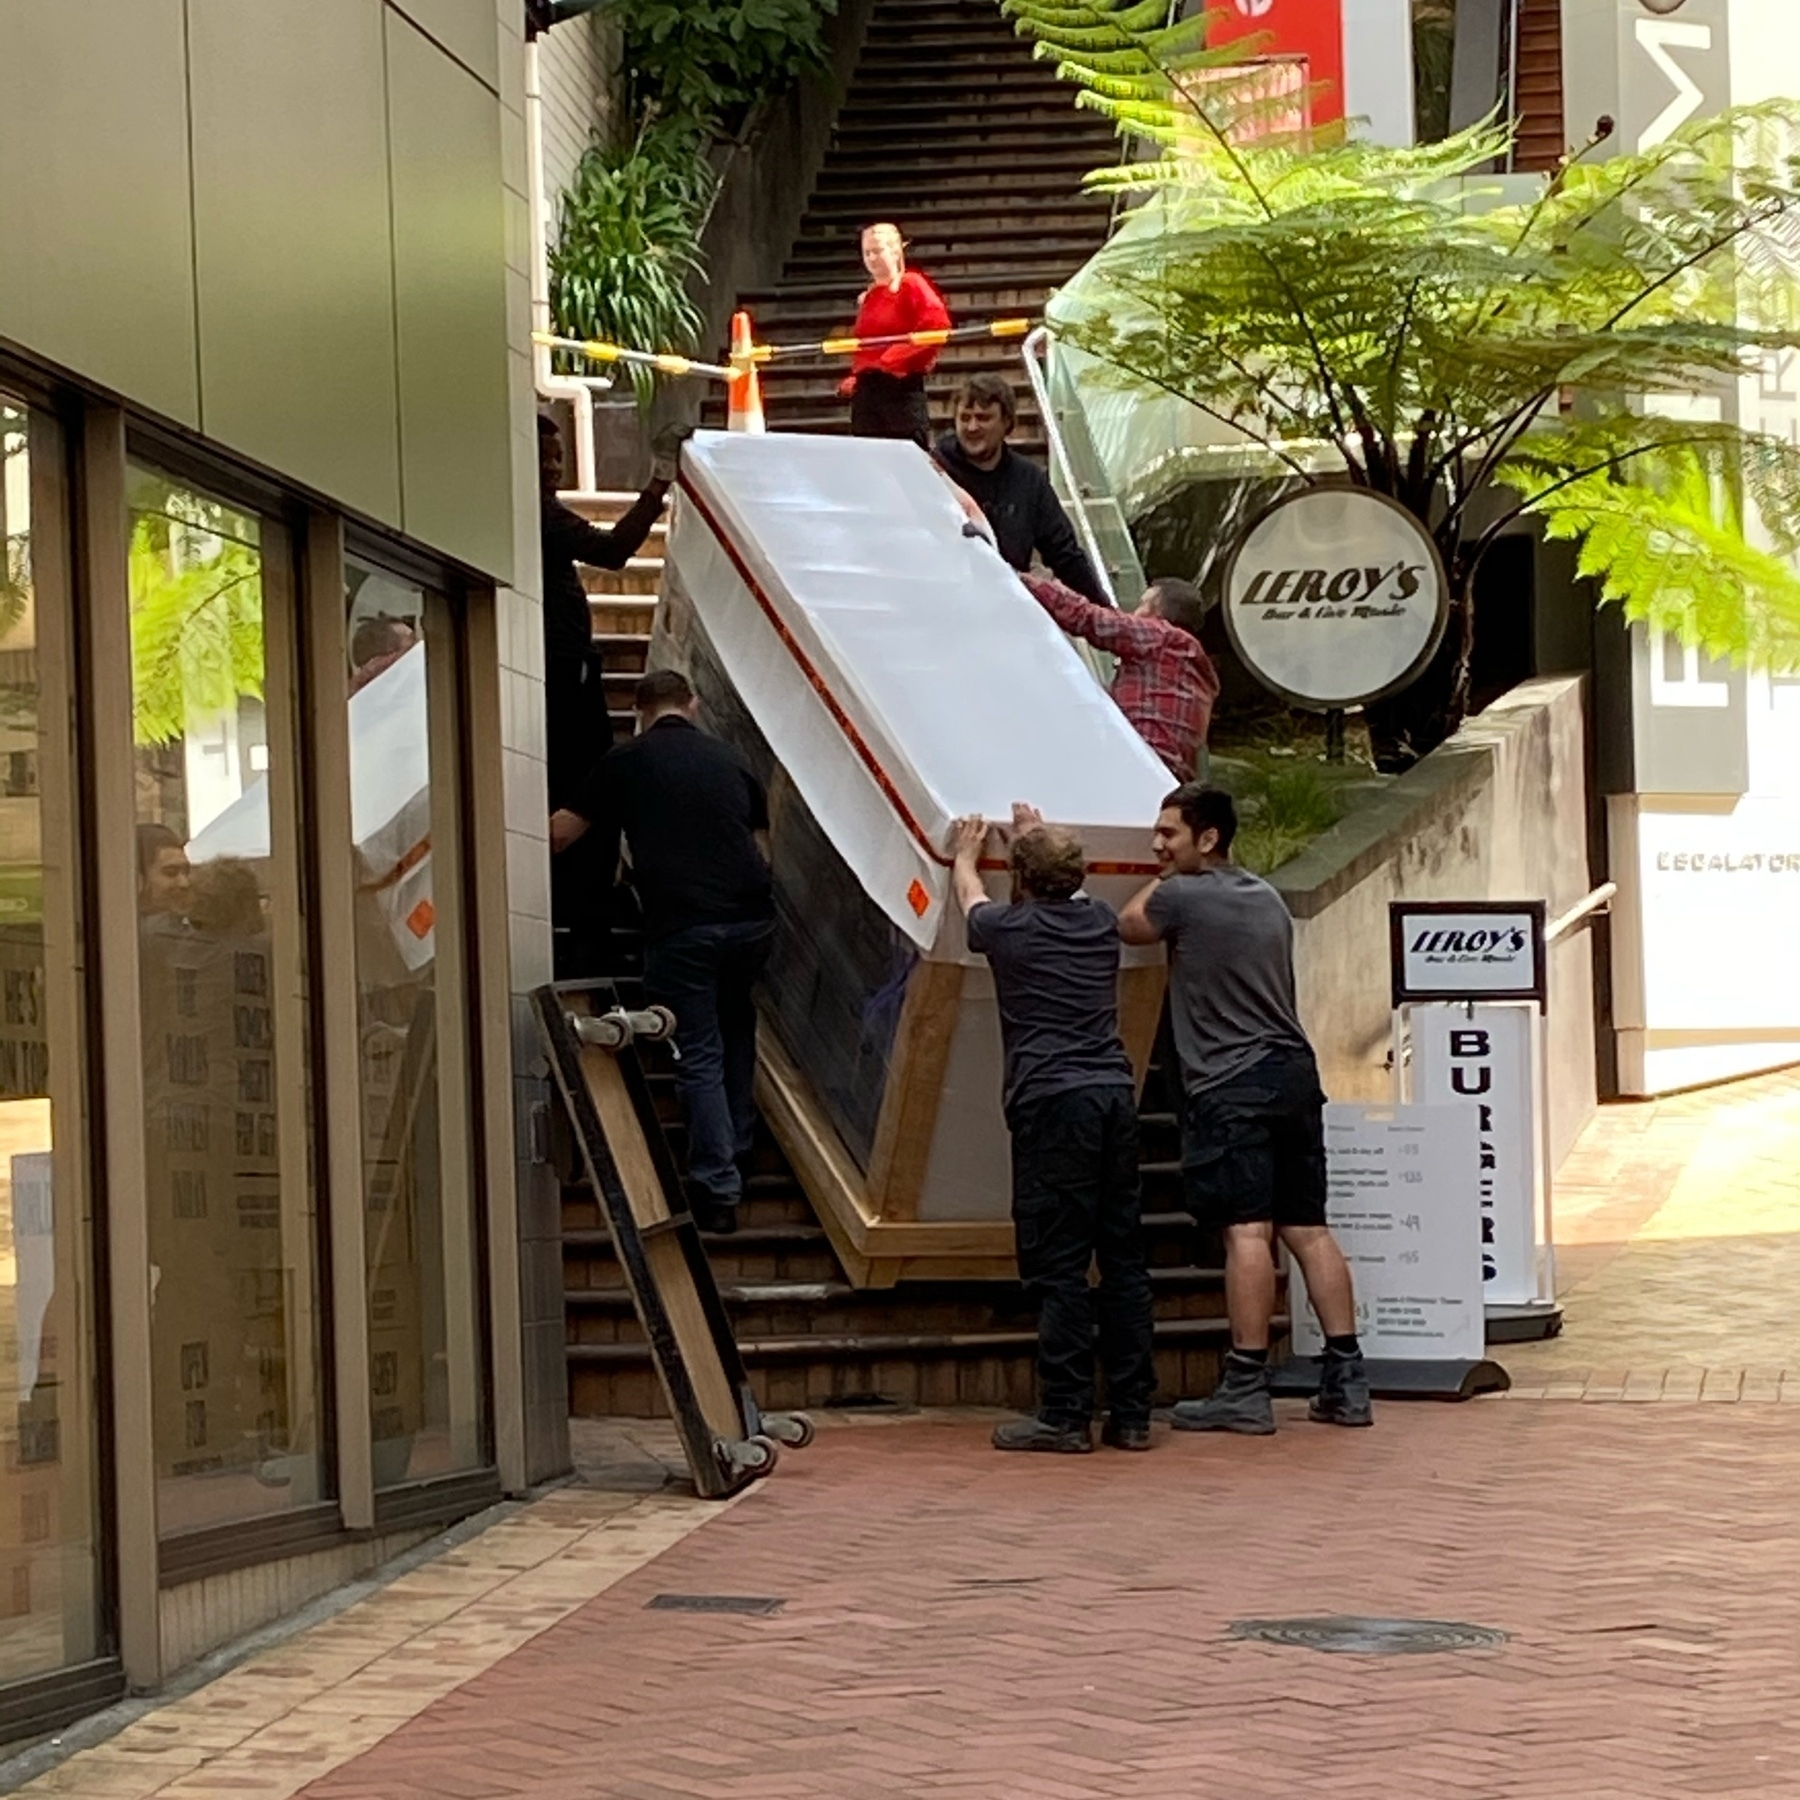 Six men moving a huge wrapped object up a set of steps.